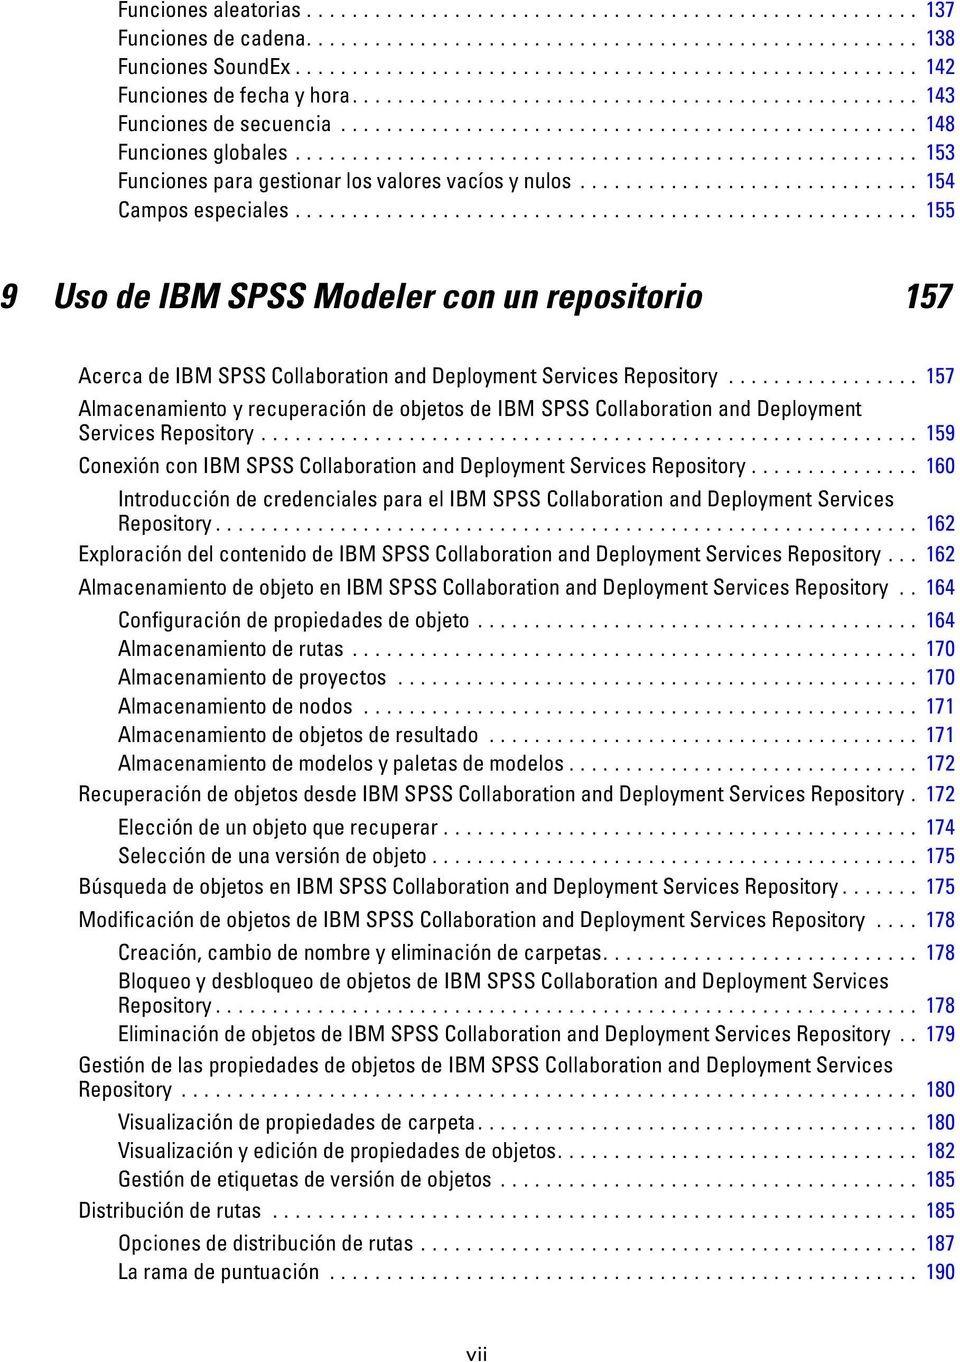 ................ 157 Almacenamiento y recuperación de objetos de IBM SPSS Collaboration and Deployment ServicesRepository... 159 Conexión con IBM SPSS Collaboration and Deployment Services Repository.